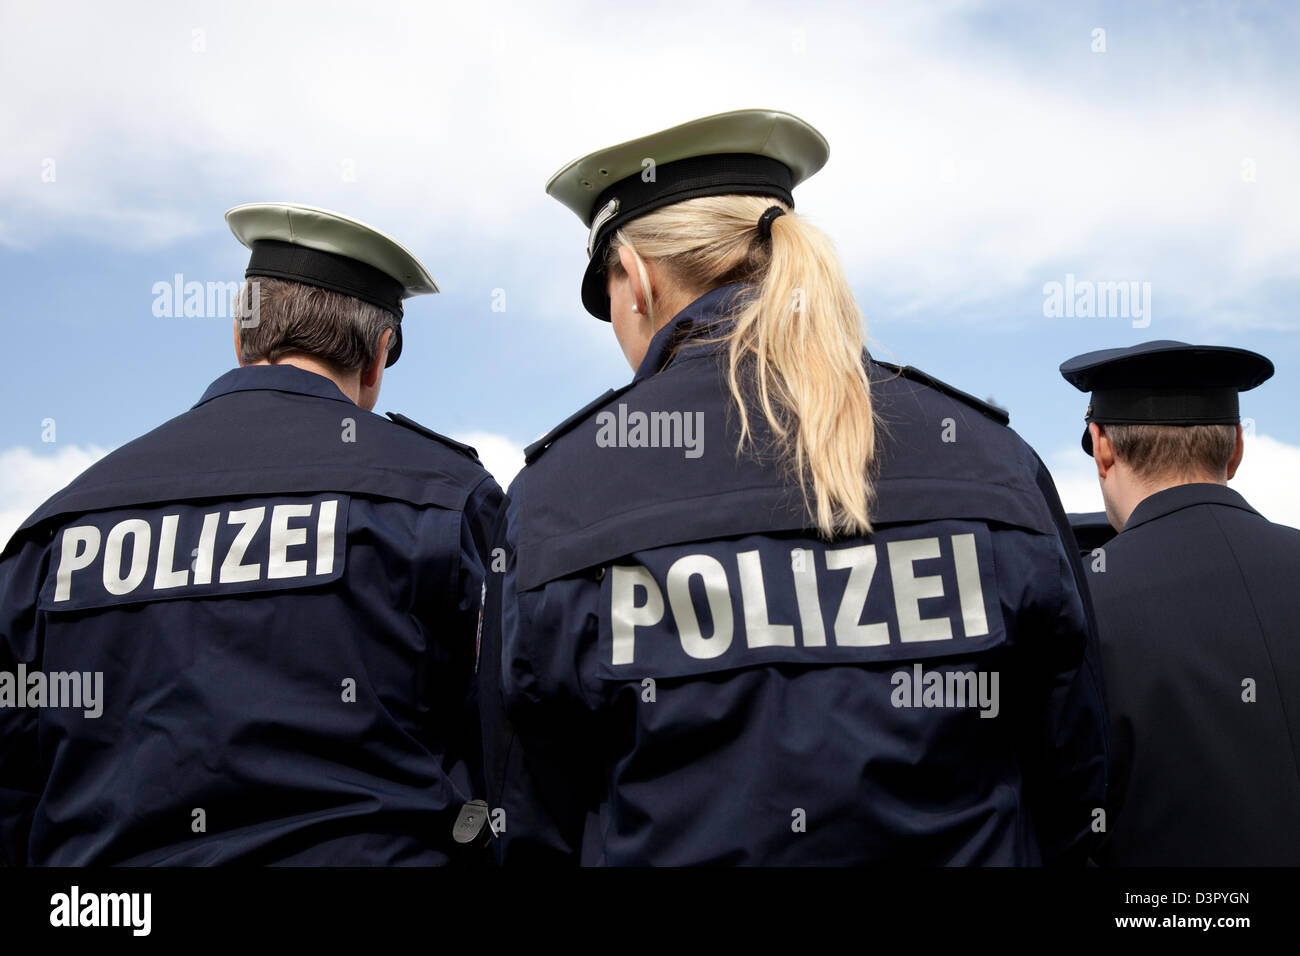 Duesseldorf, Germany, police officers with the new blue uniform - Stock Image